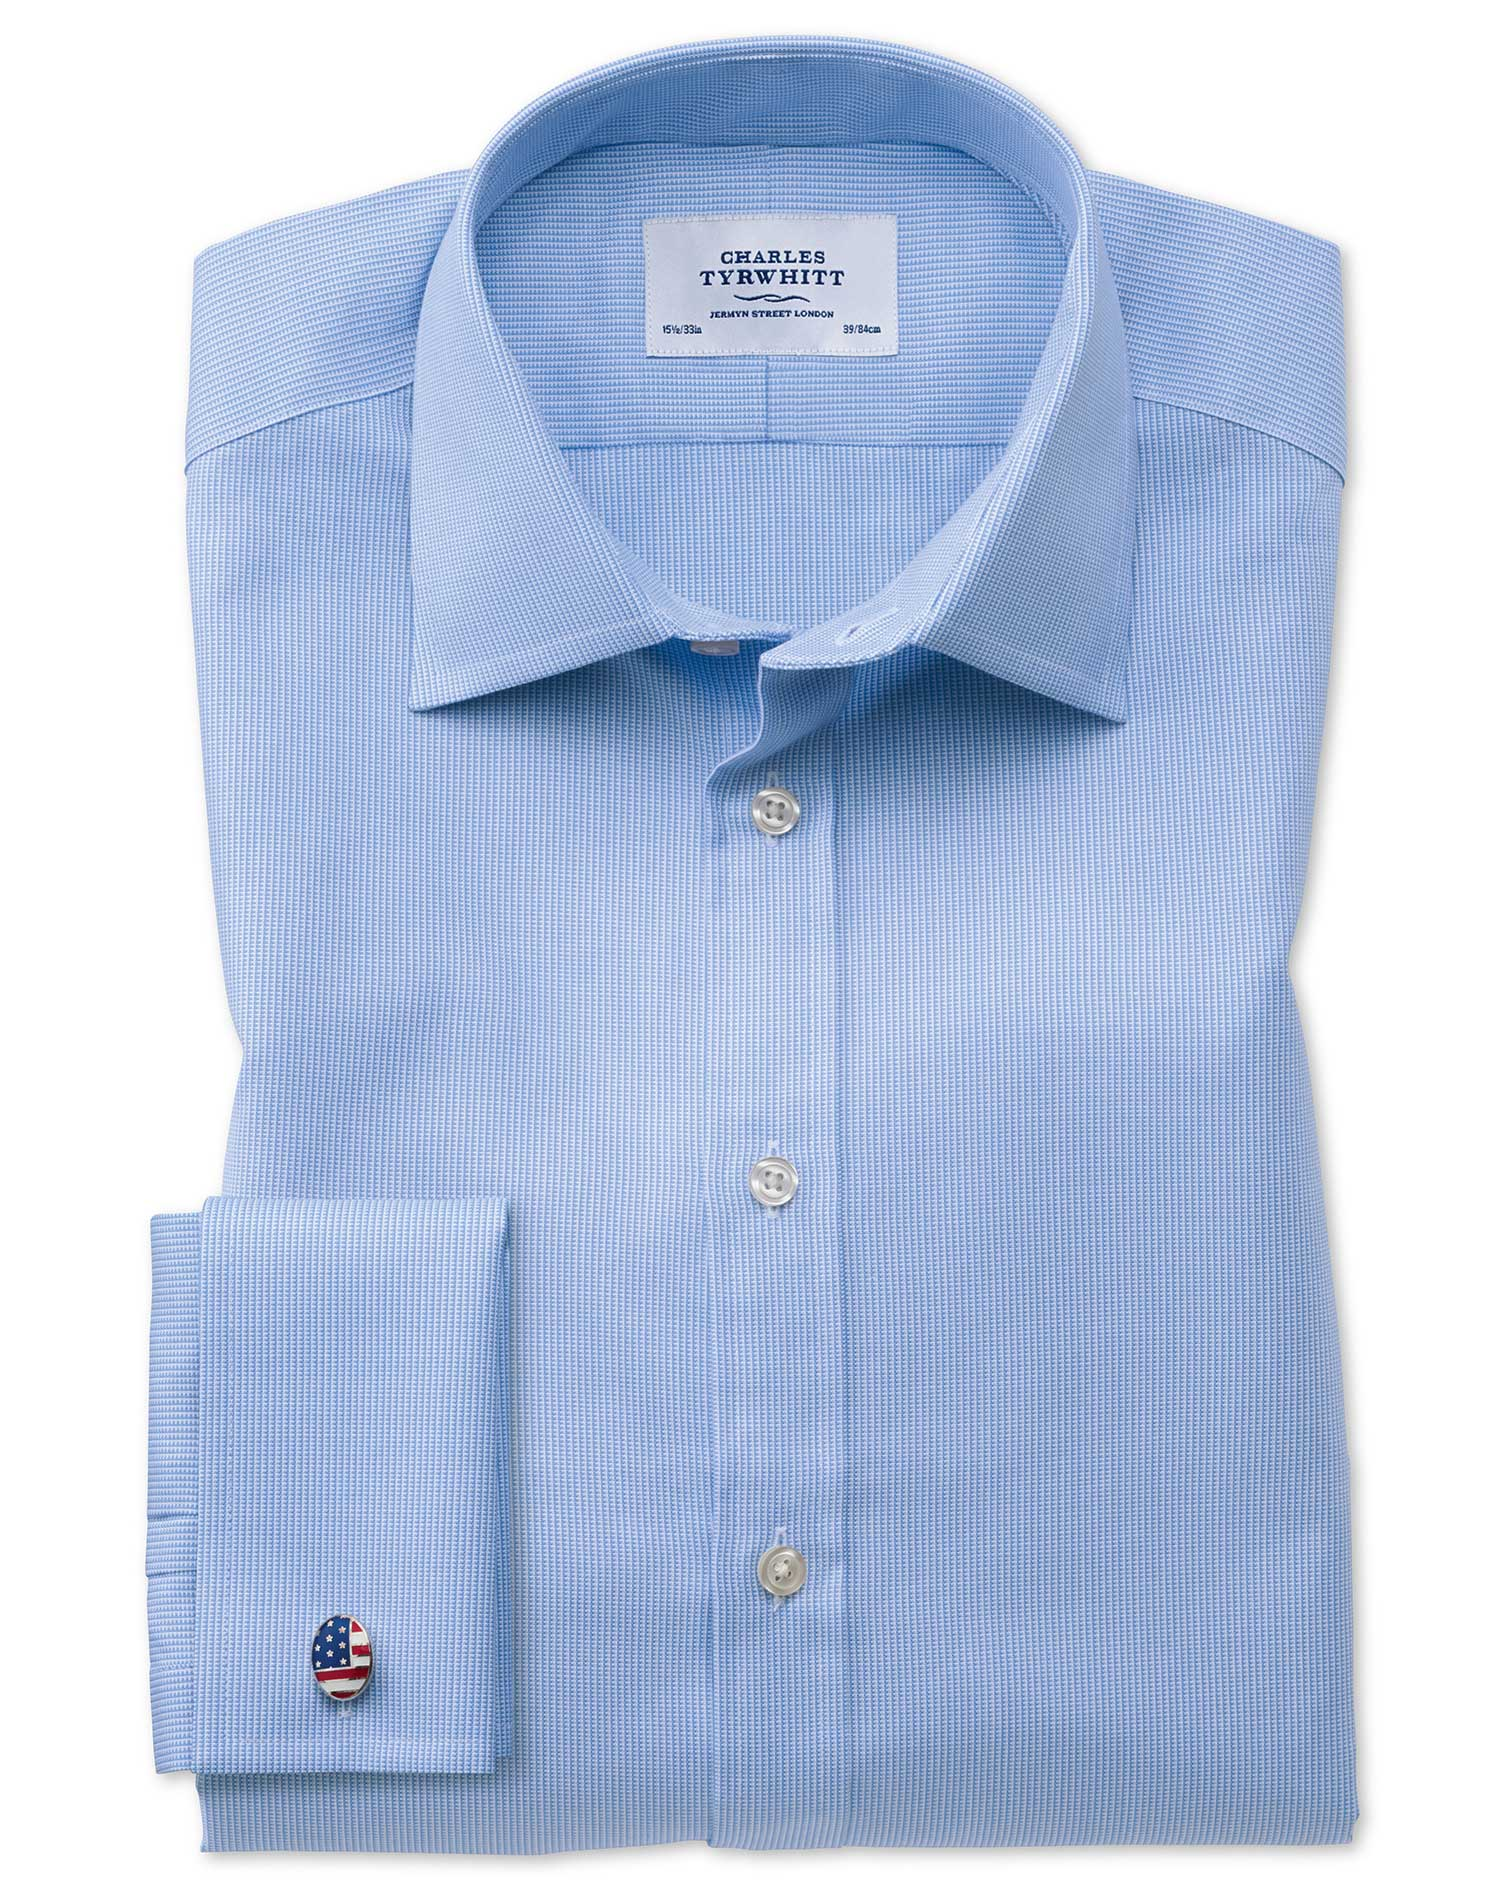 Extra Slim Fit Oxford Sky Blue Cotton Formal Shirt Double Cuff Size 15.5/36 by Charles Tyrwhitt